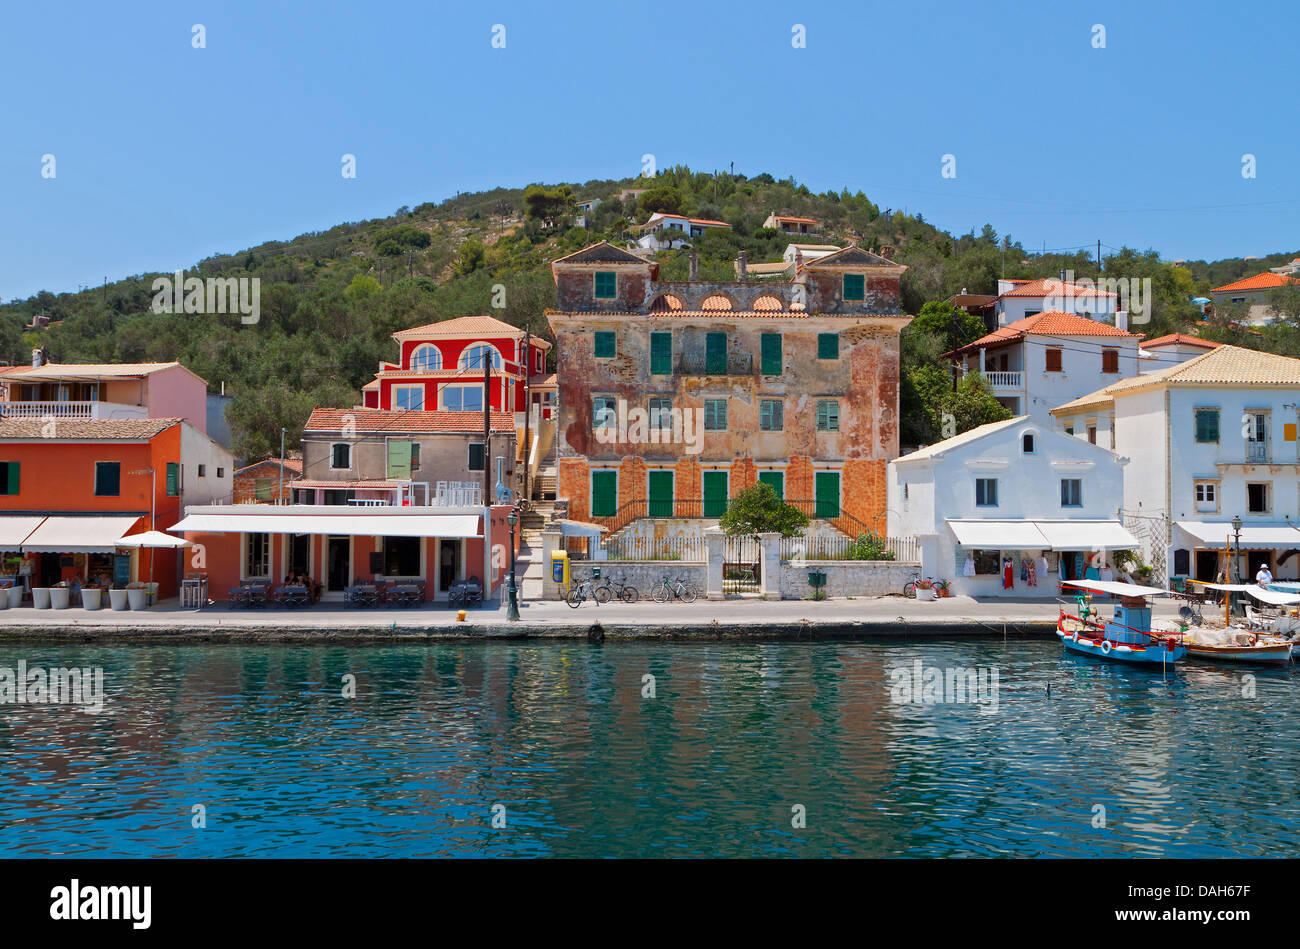 Gaios port at Paxos island in Greece. Ionian sea - Stock Image